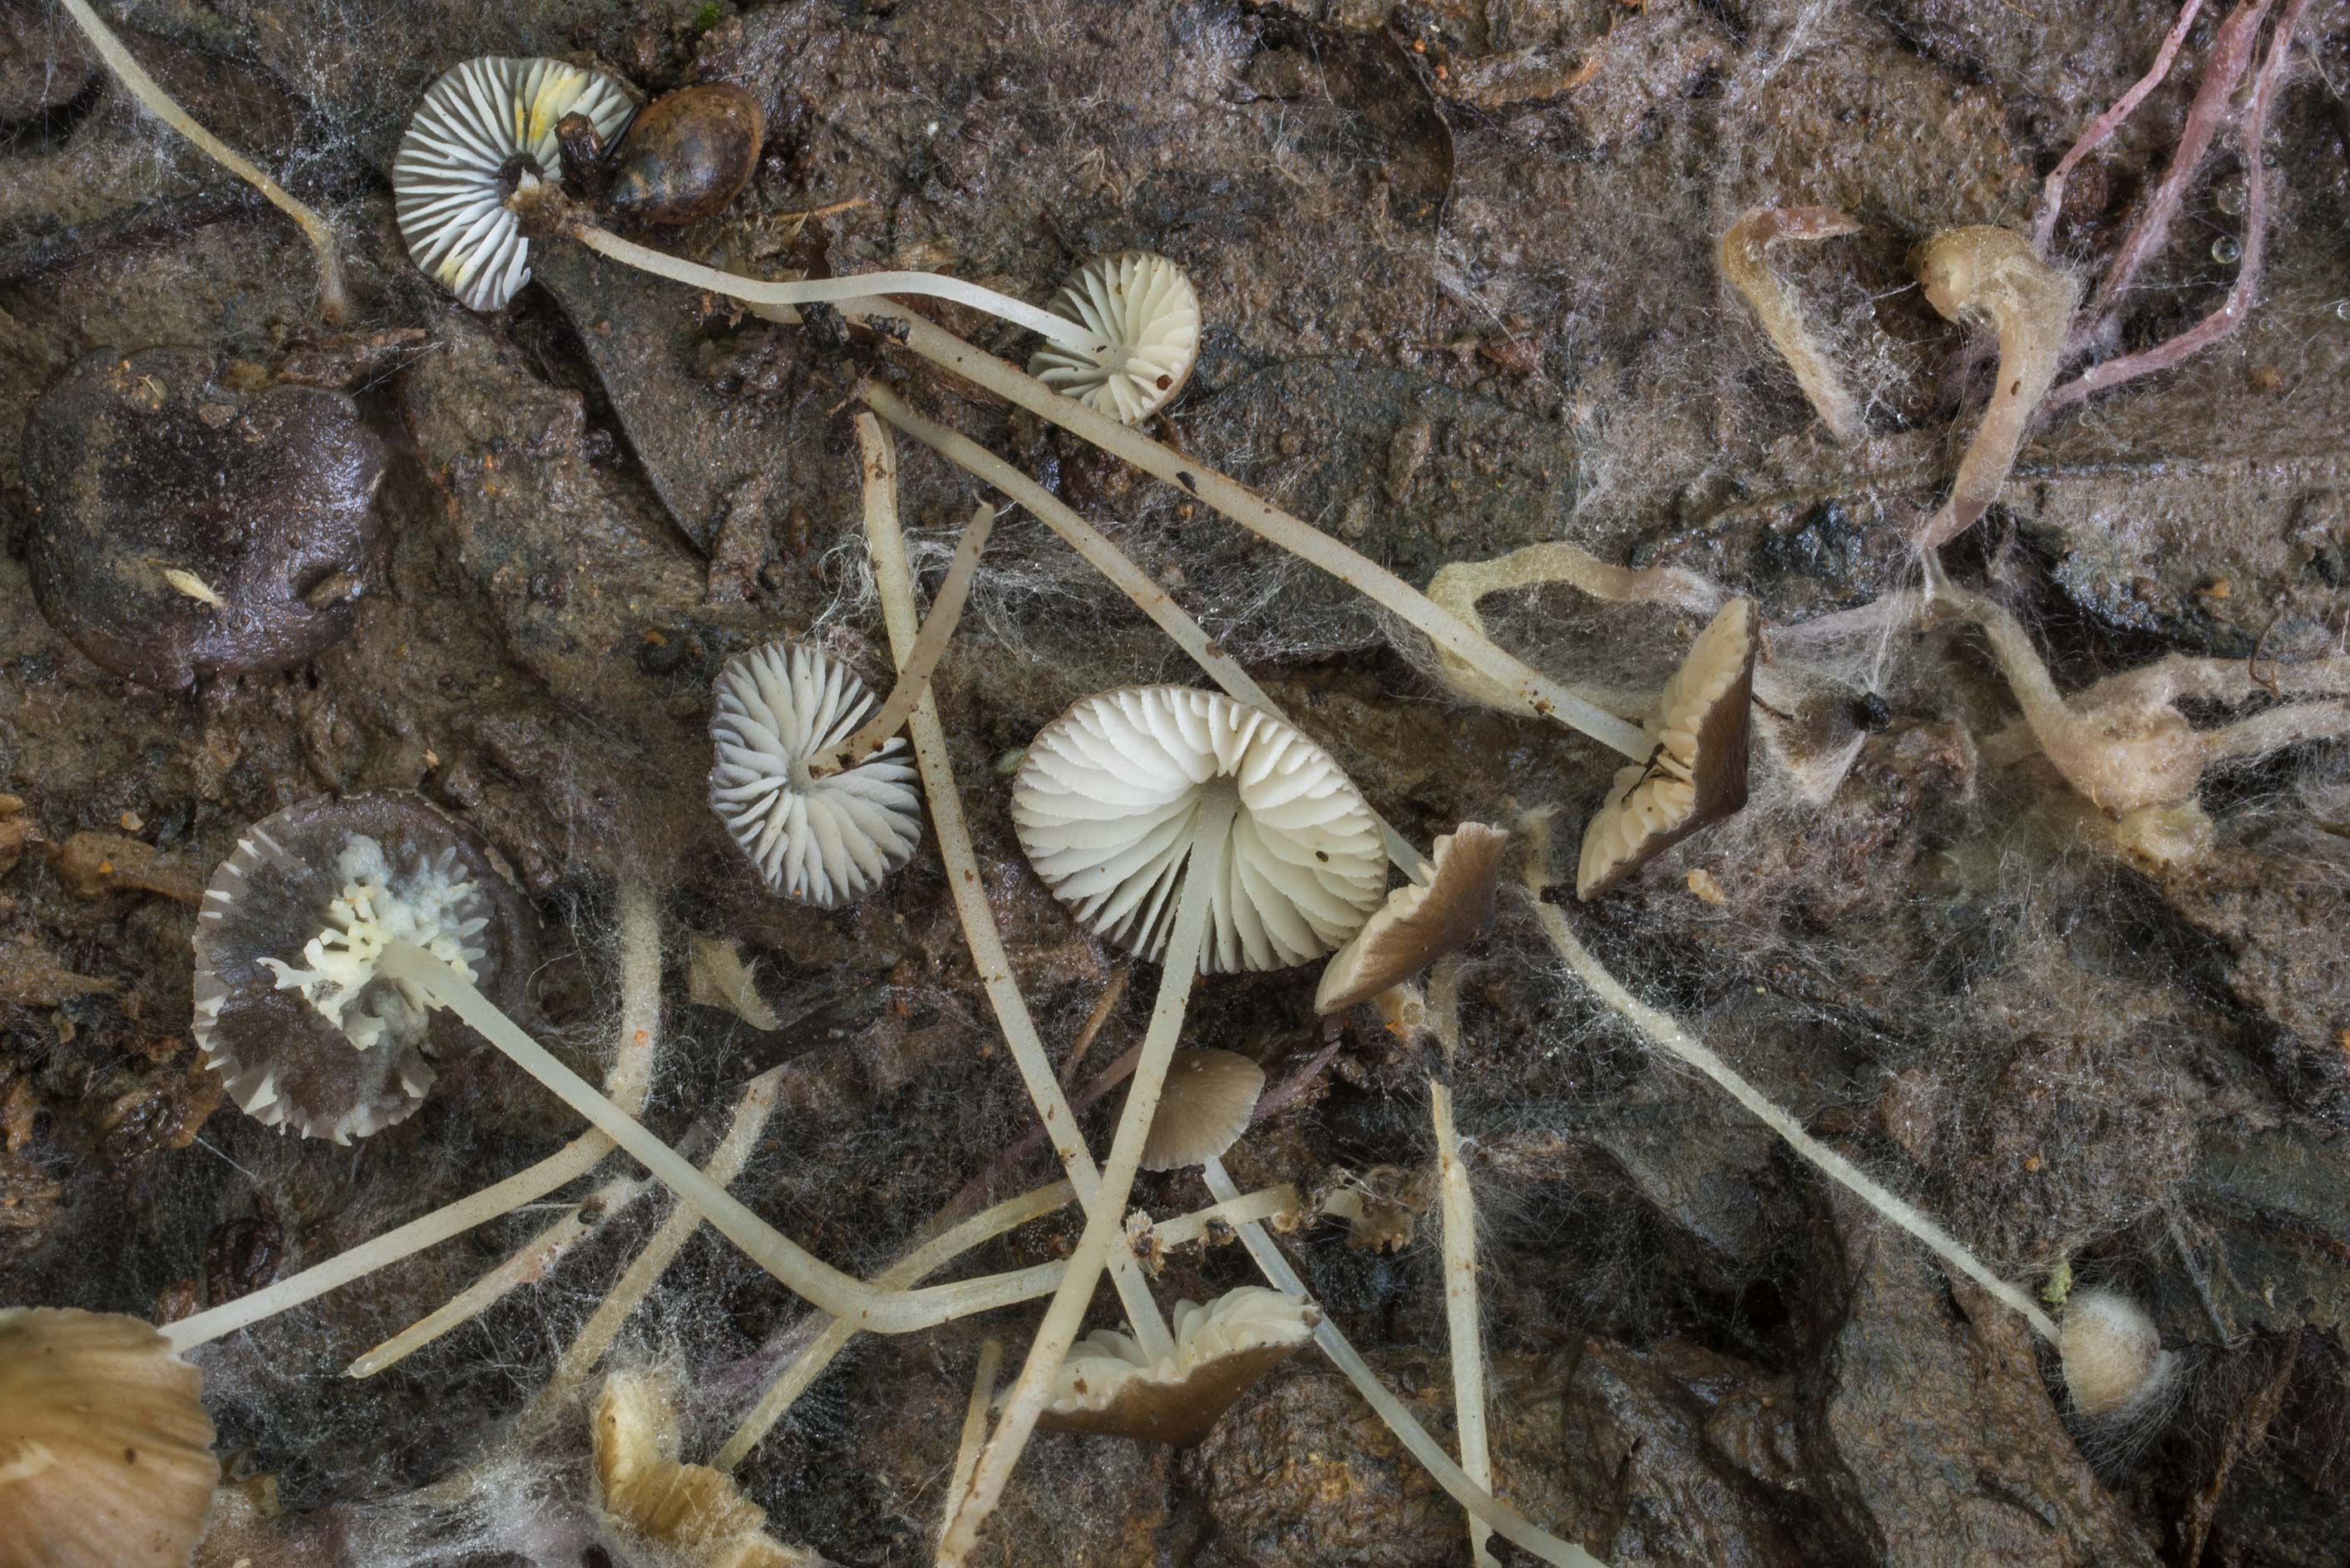 Mycena mushrooms in a wet area in Lick Creek Park. College Station, Texas